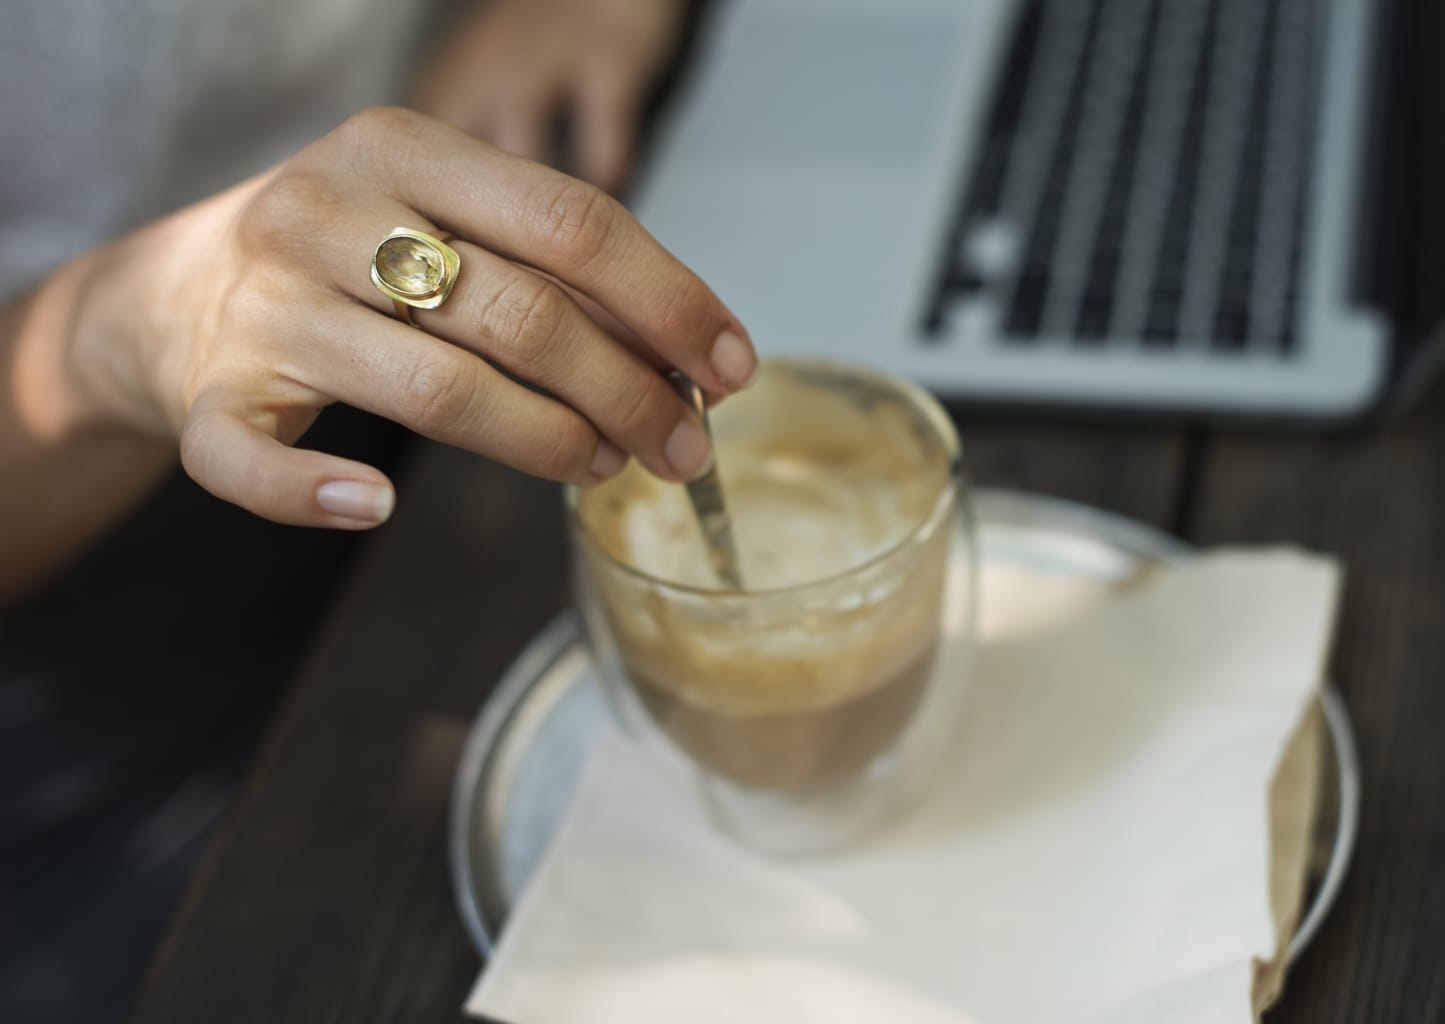 Girl stirring her coffee while working on a laptop